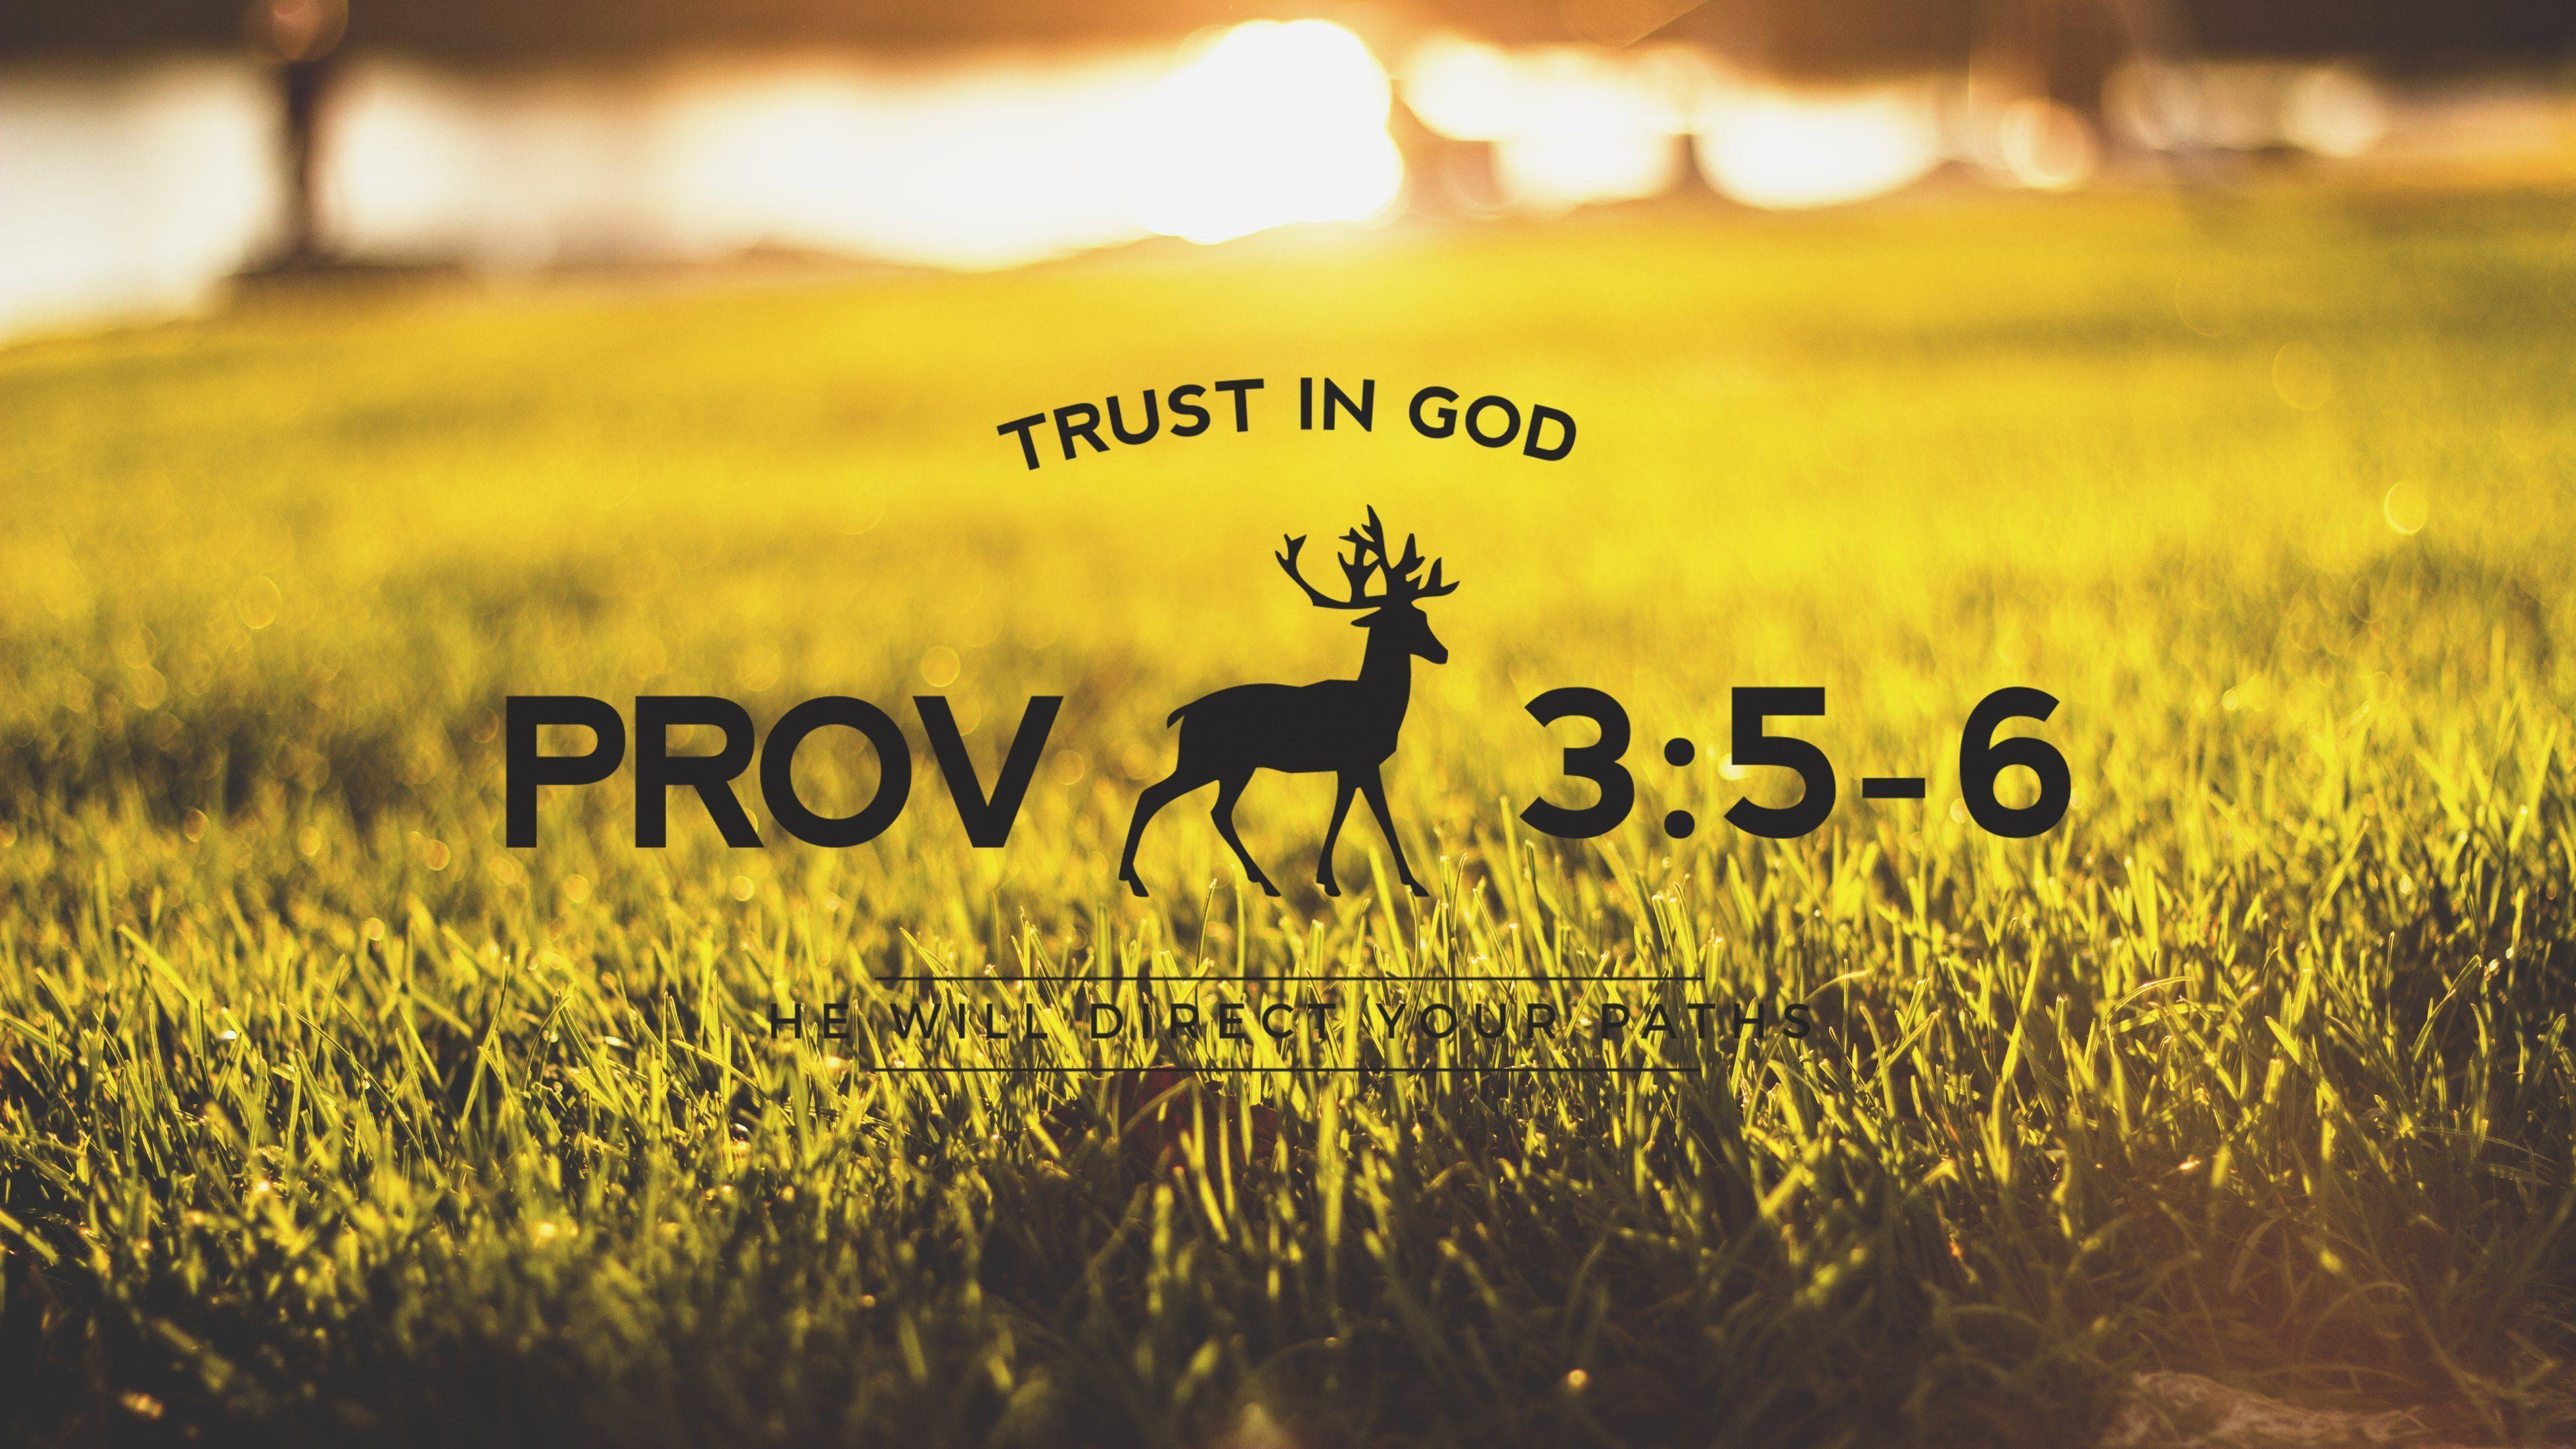 Trust in God Wallpapers · HD Wallpapers